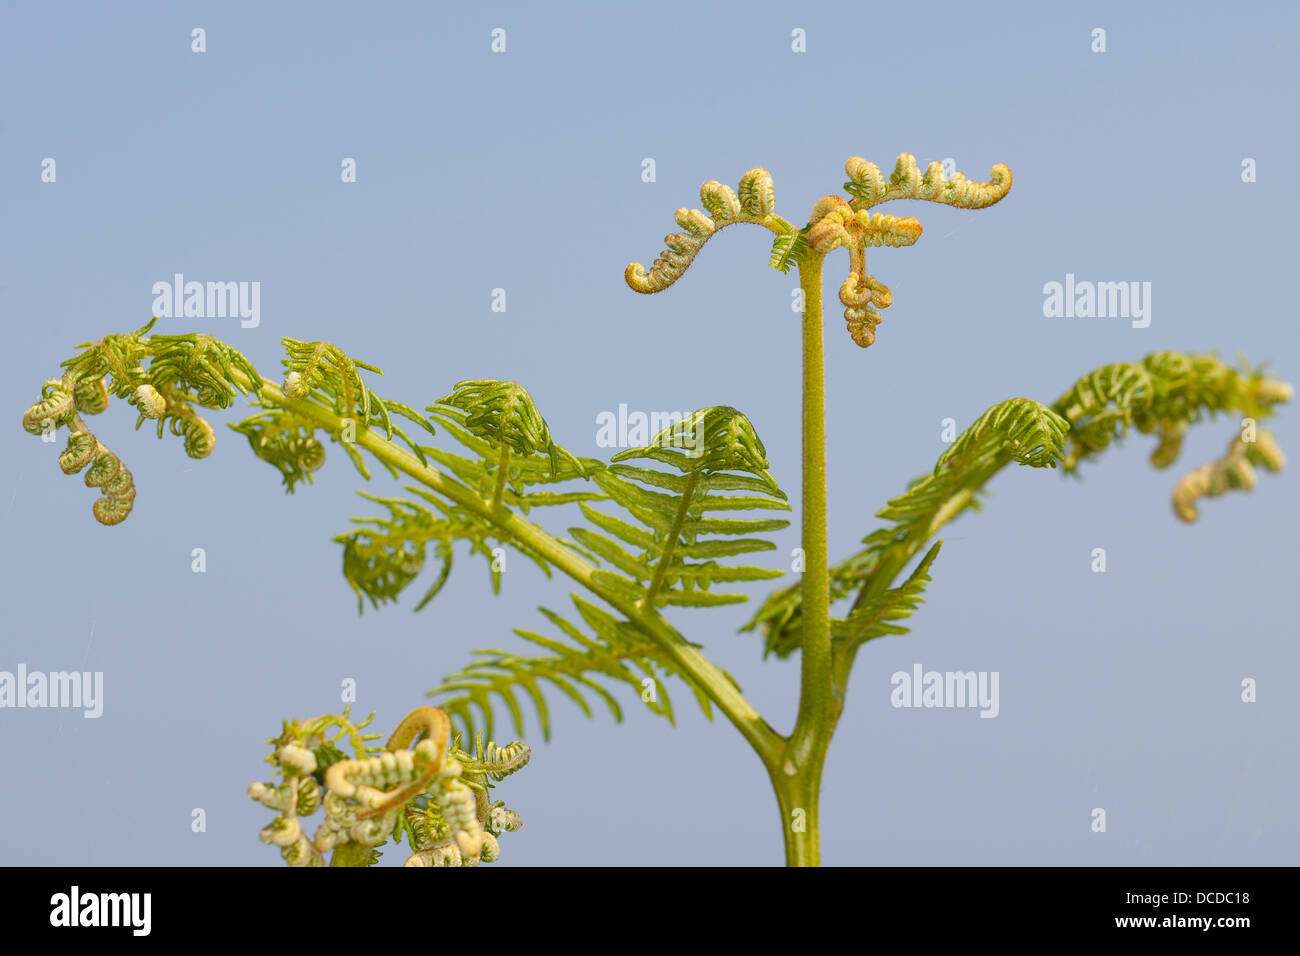 Adlerfarn, Adler-Farn, Pteridium aquilinum, brake, common bracken, eagle fern - Stock Image